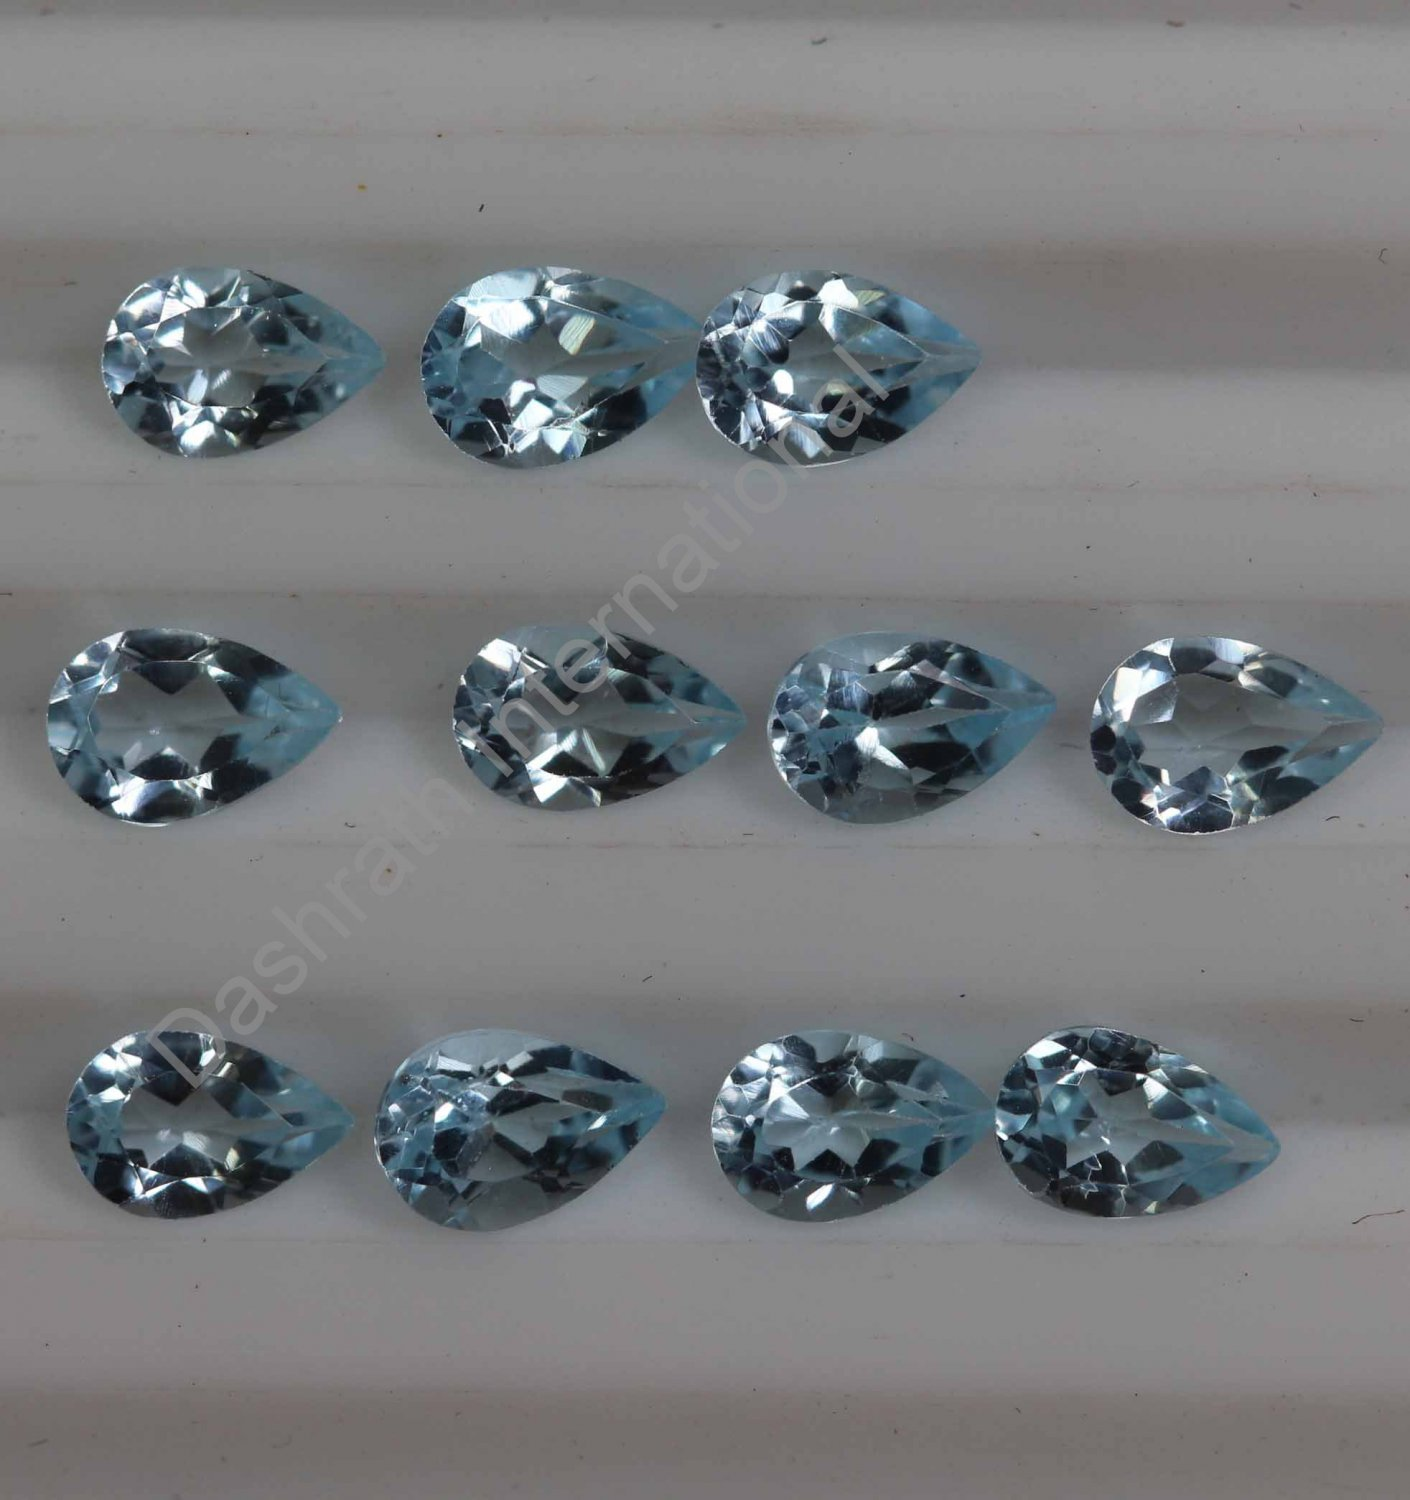 4x6mm   Natural Sky Blue Topaz Faceted Cut Pear 5 Pieces Lot  Top Quality Loose Gemstone